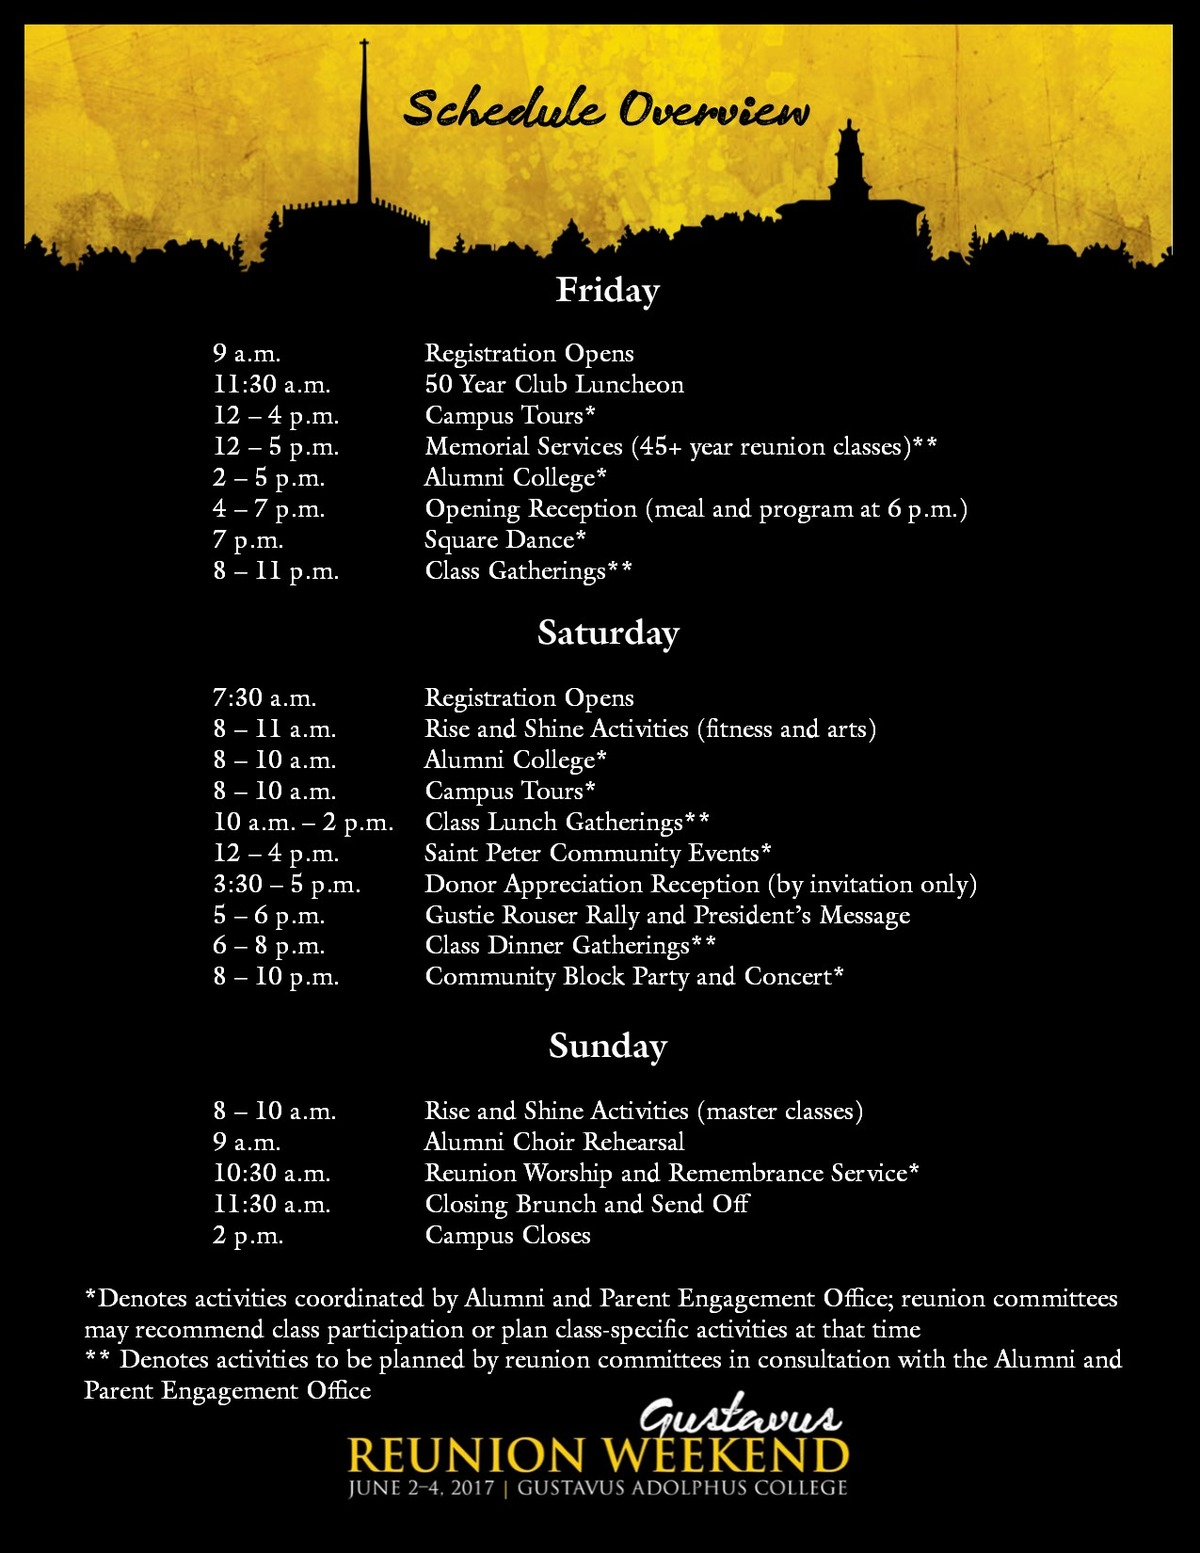 Reunion Weekend 2017 Tentative Schedule